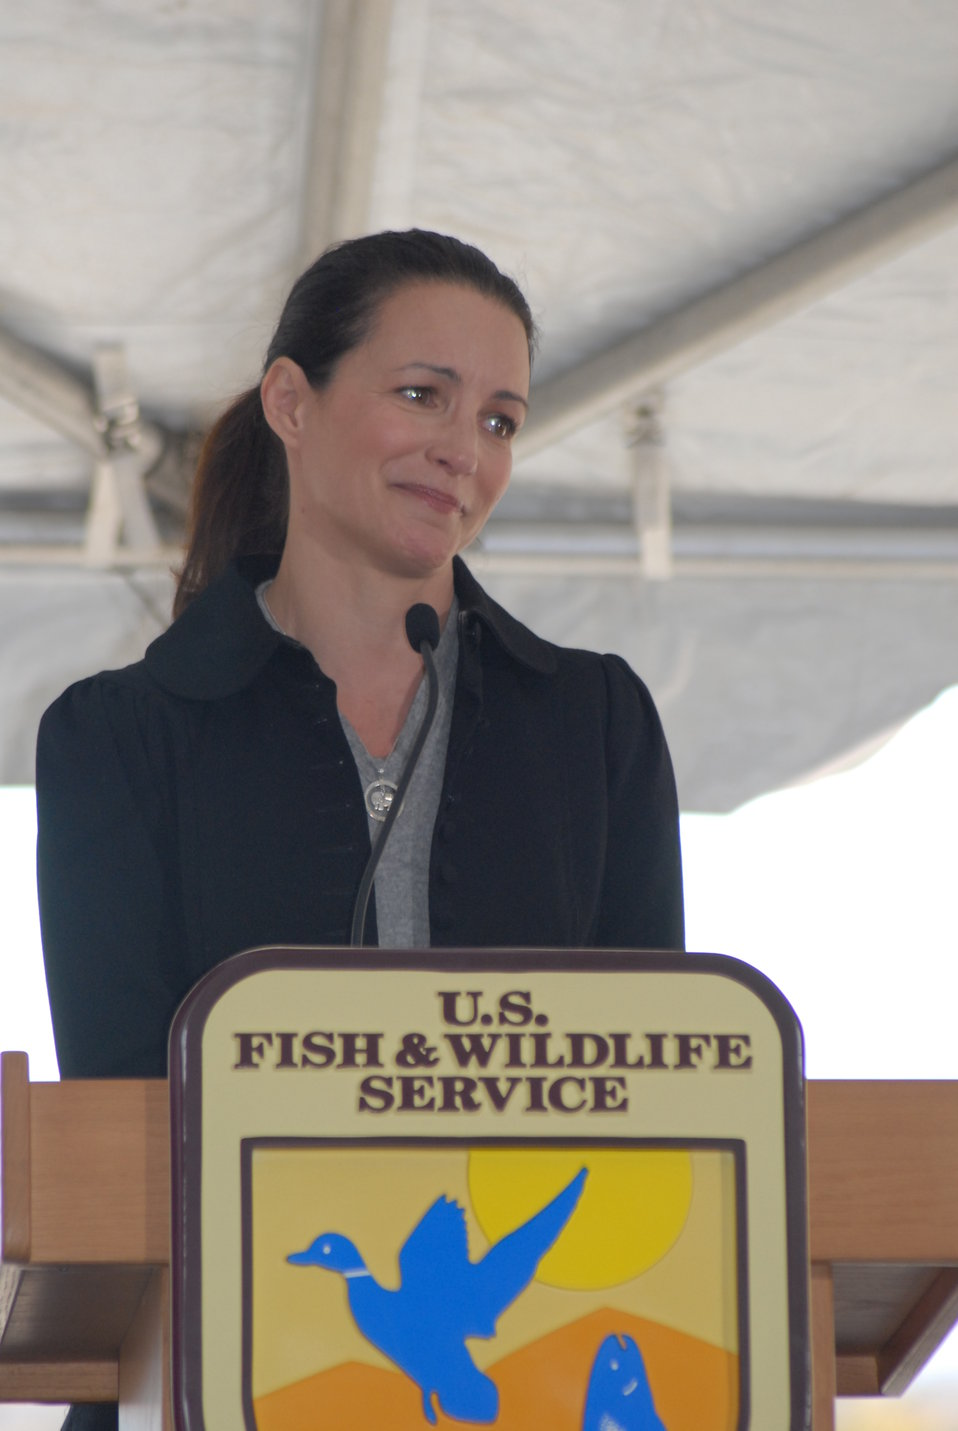 Kristin Davis, actress and Patron for The David Sheldrick Wildlife Trust, speaks at the U.S. Ivory Crush.